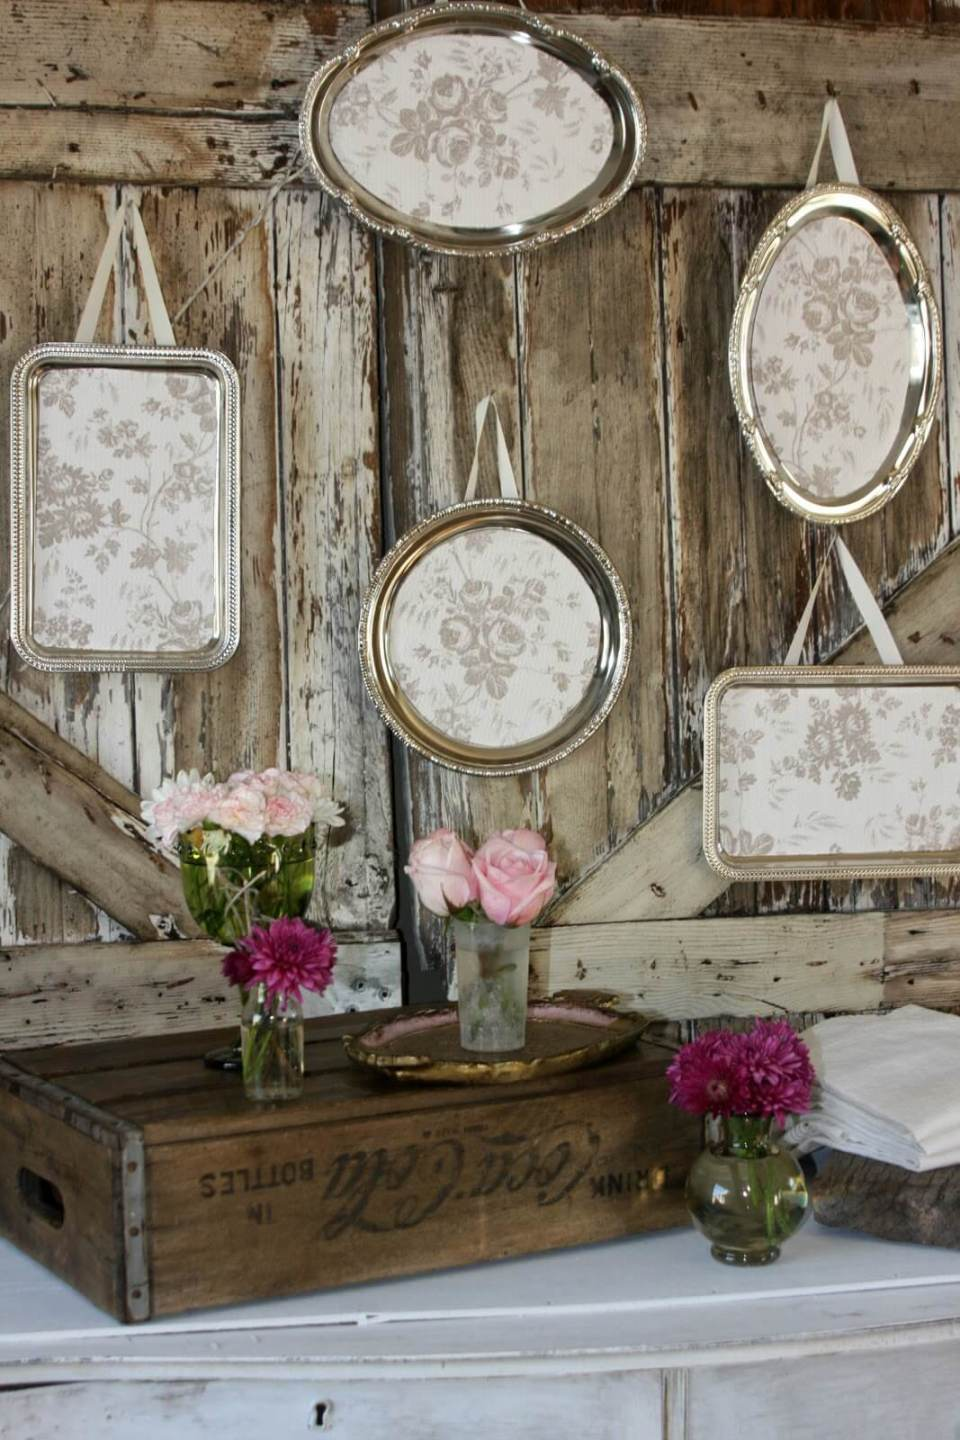 Antique Silverplate Hanging Wall Art | Vintage Porch Decor Ideas